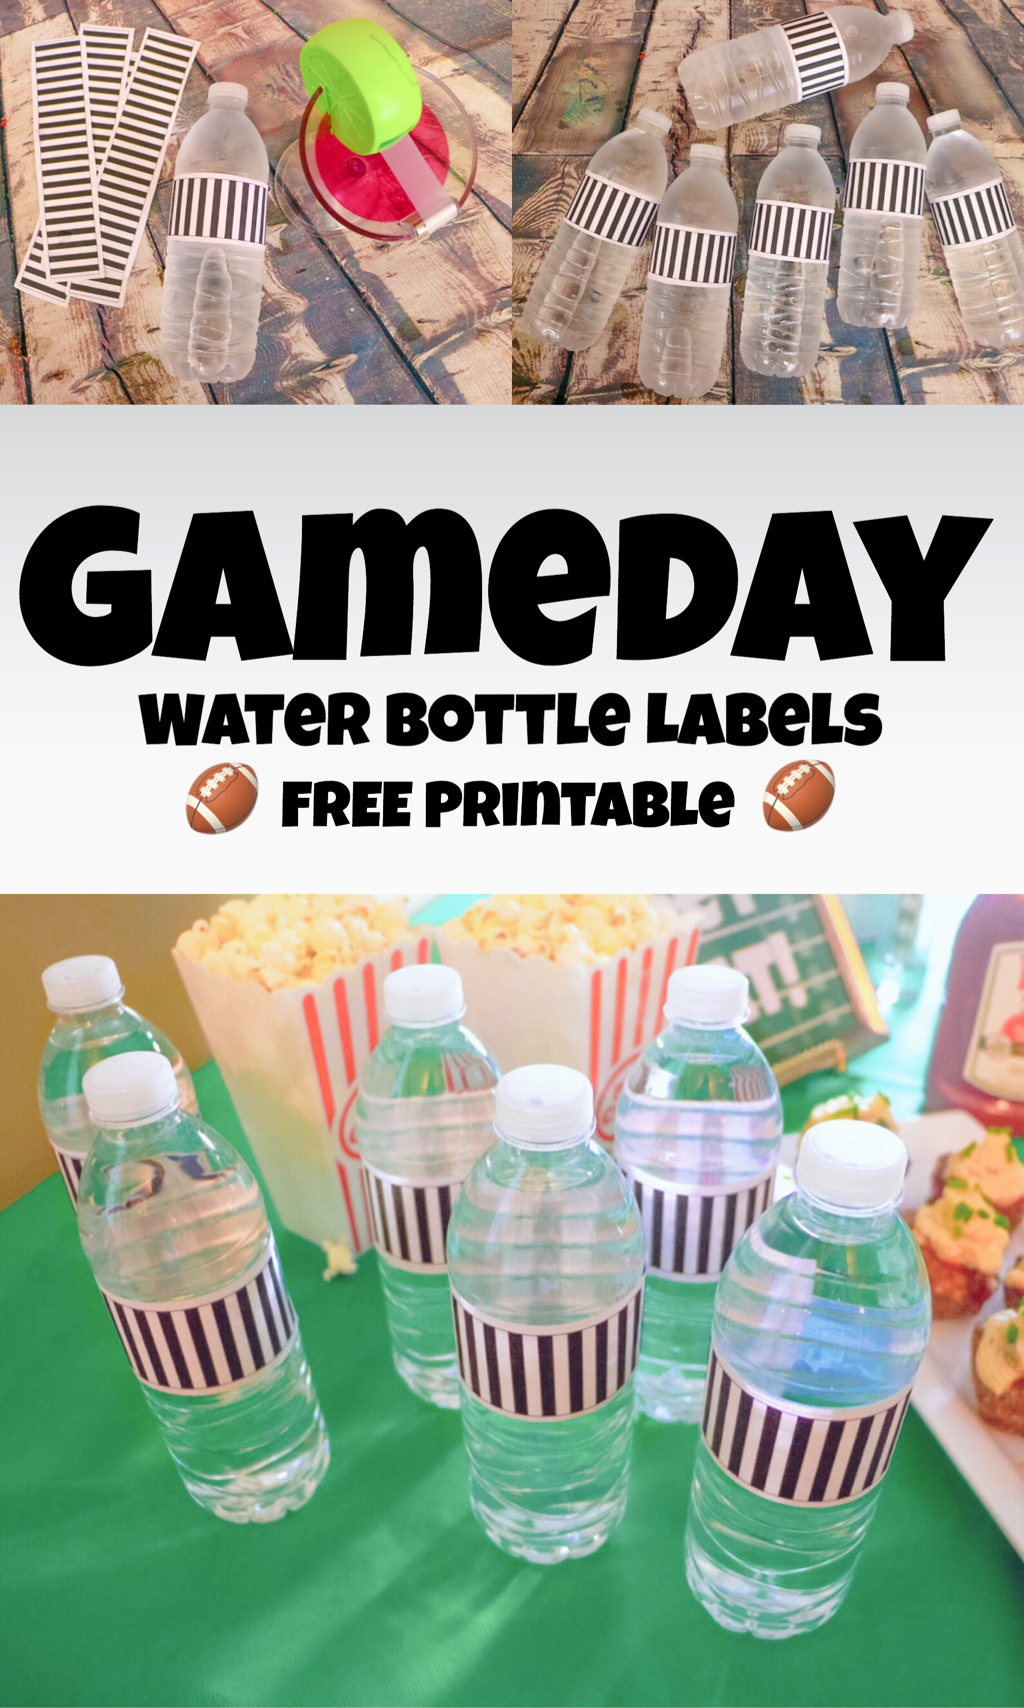 image regarding Free Printable Water Bottle Labels named GAMEDAY H2o BOTTLE LABELS ~ Absolutely free PRINTABLE - The Trophy